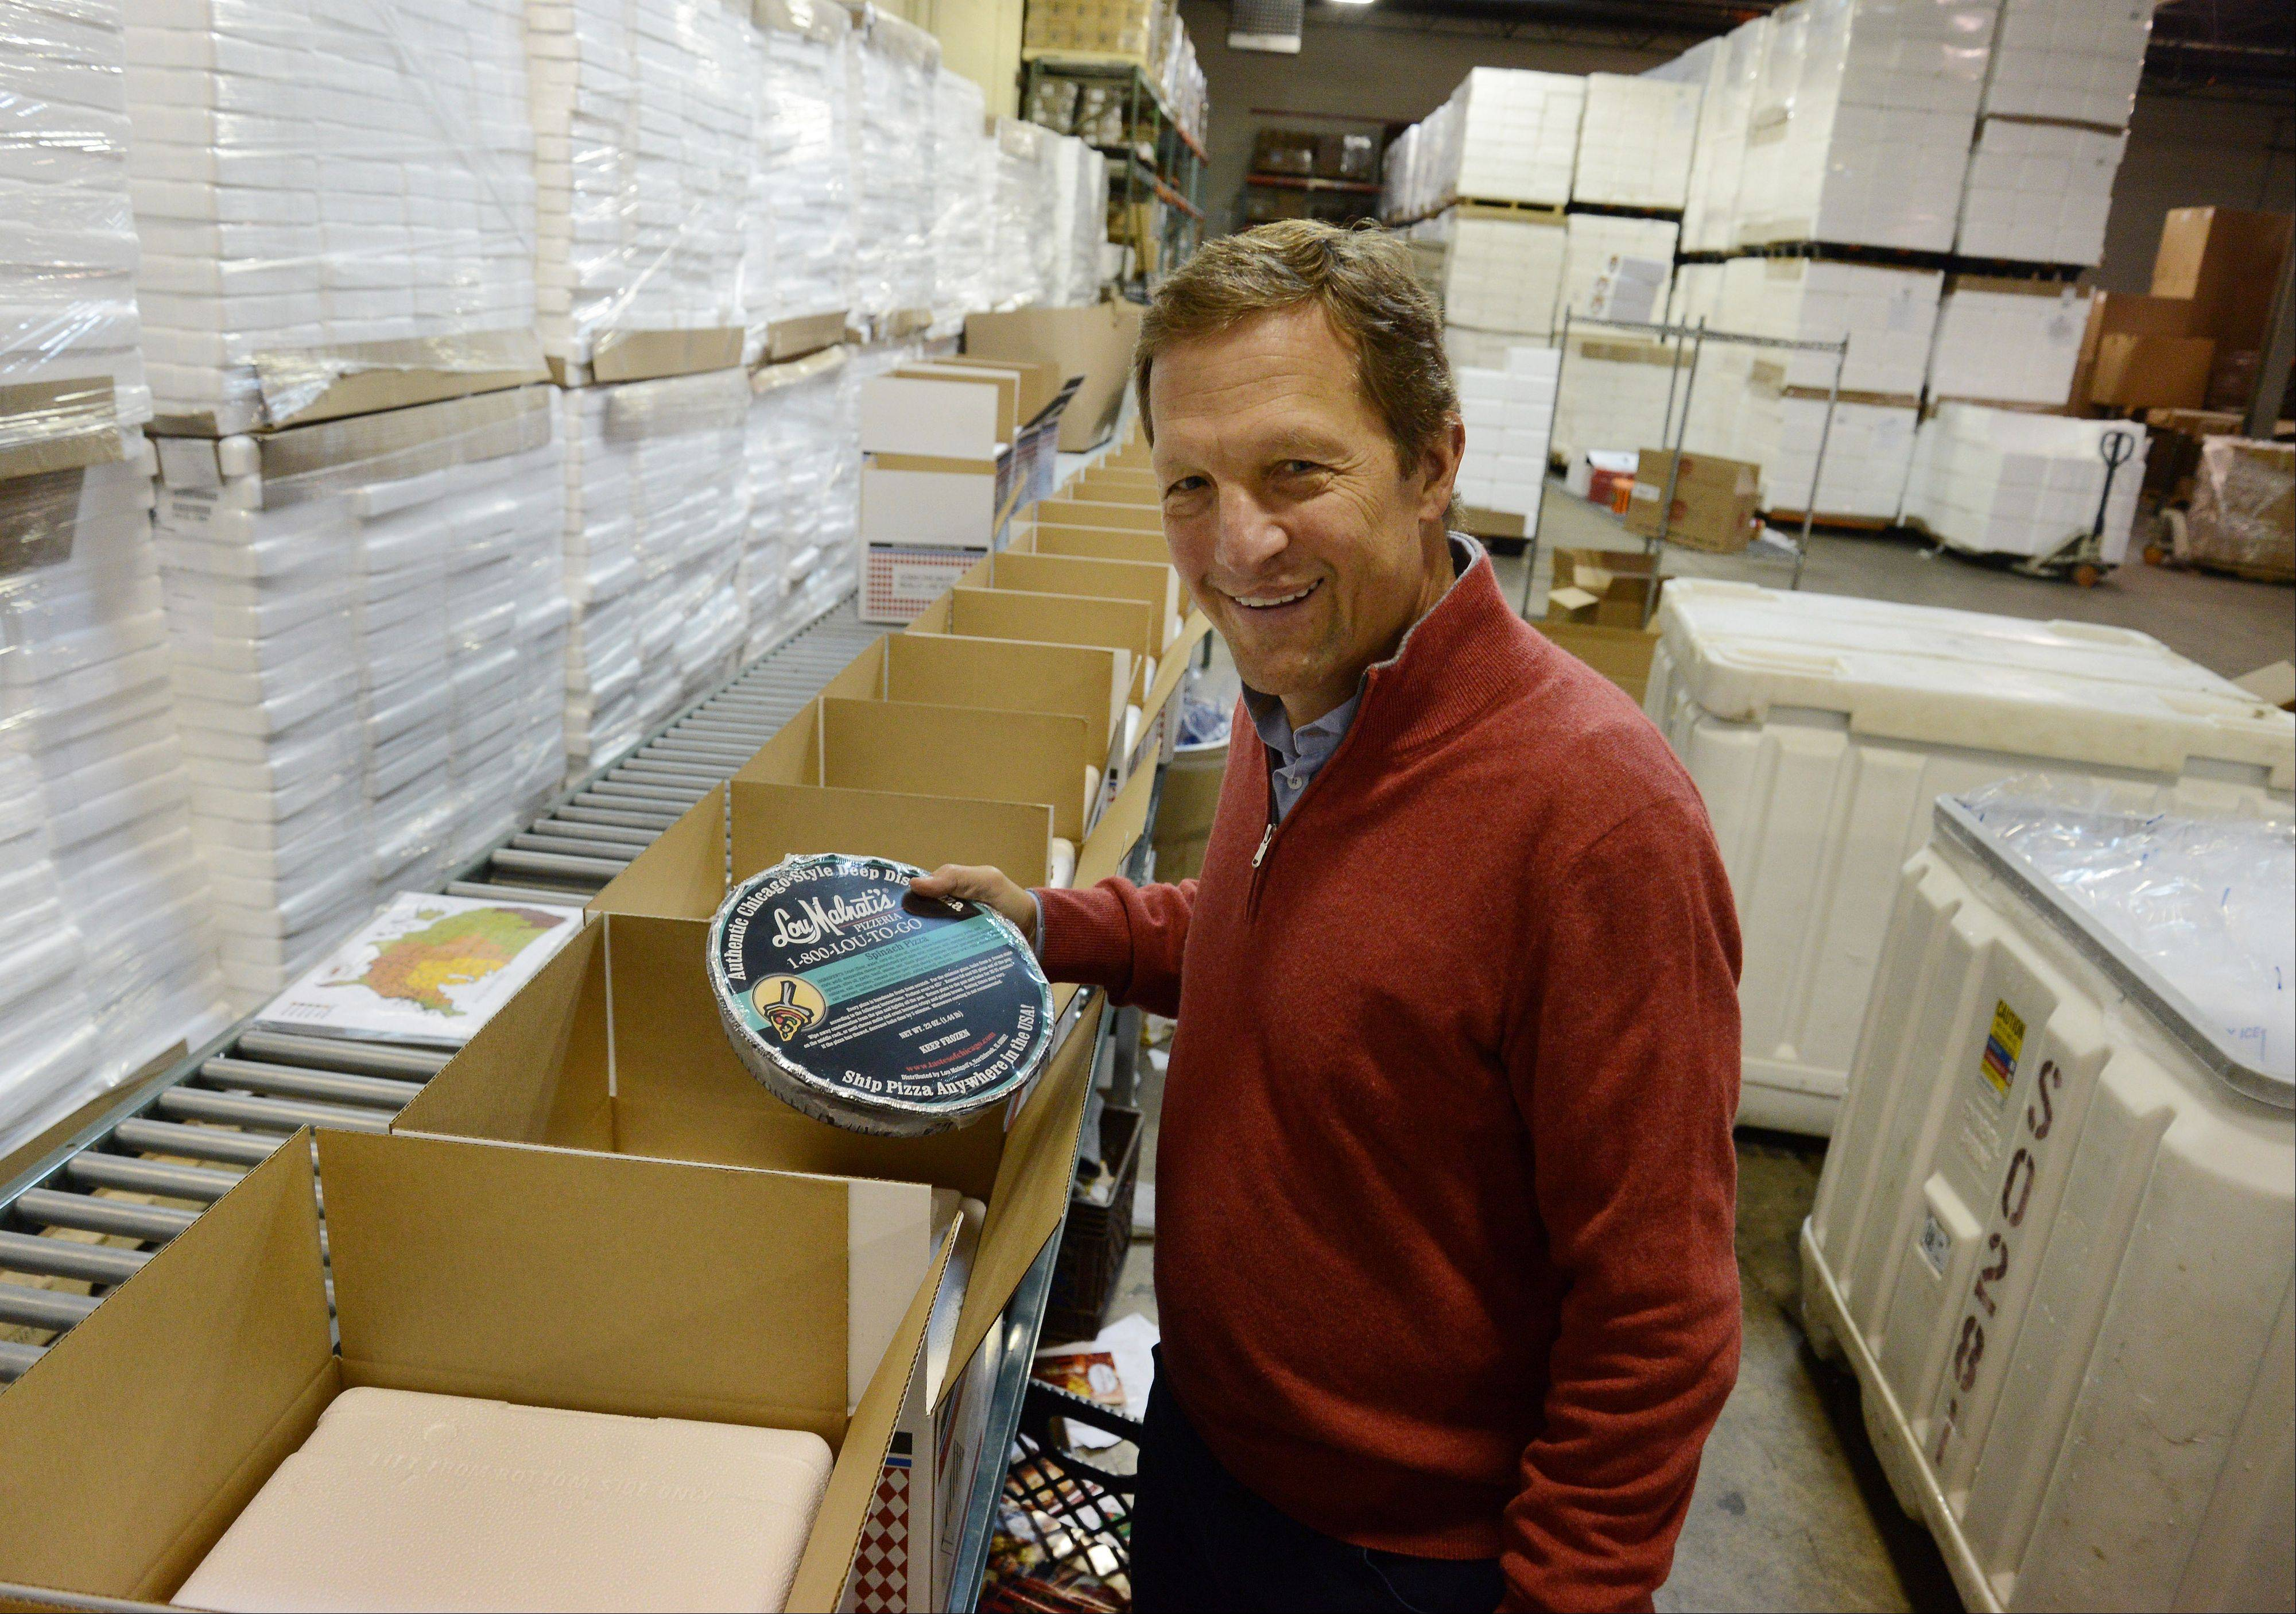 Marc Malnati of Lou Malnati's Pizza, with some Lou to Go ready for shipping.